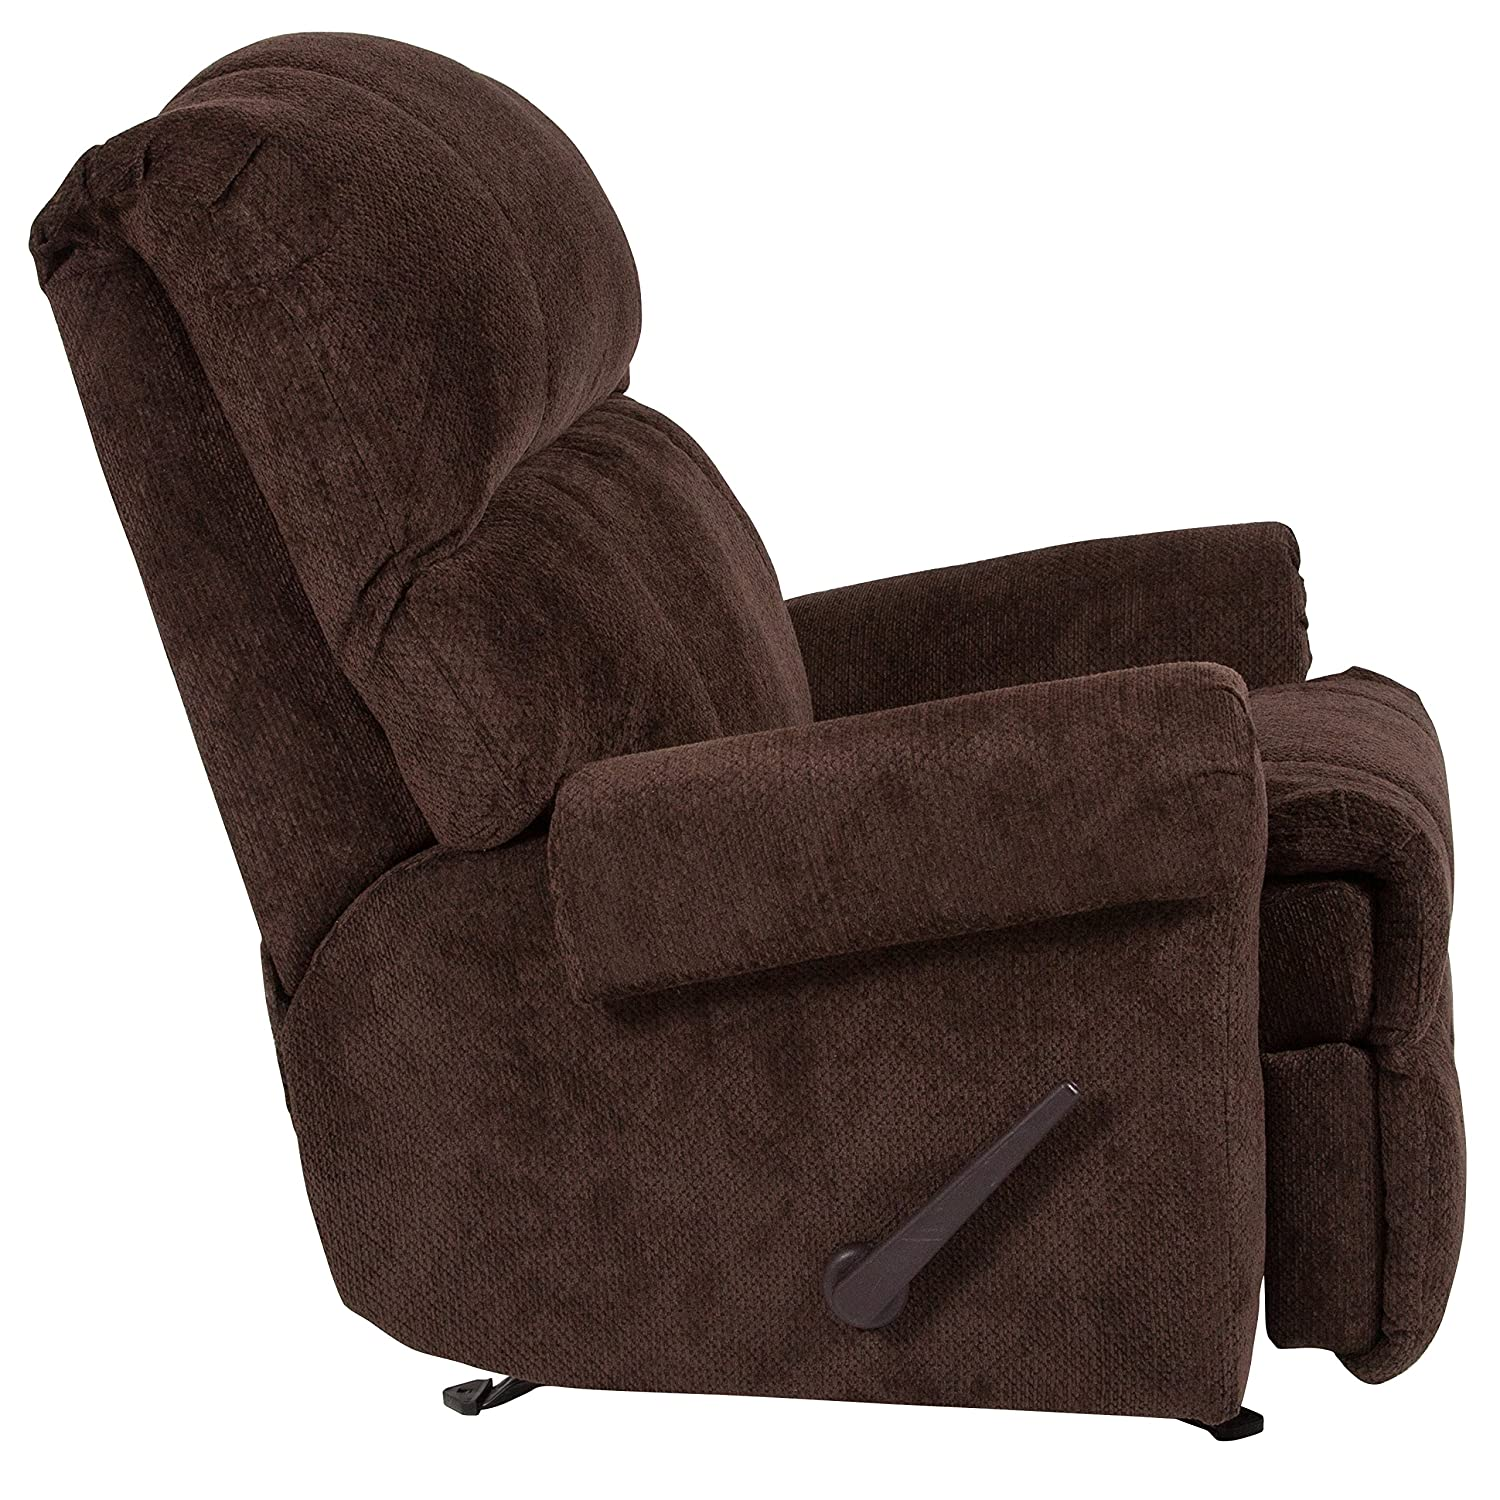 7ff7cb6c834f Amazon.com  Flash Furniture Contemporary Kelly Chocolate Super Soft  Microfiber Rocker Recliner  Kitchen   Dining